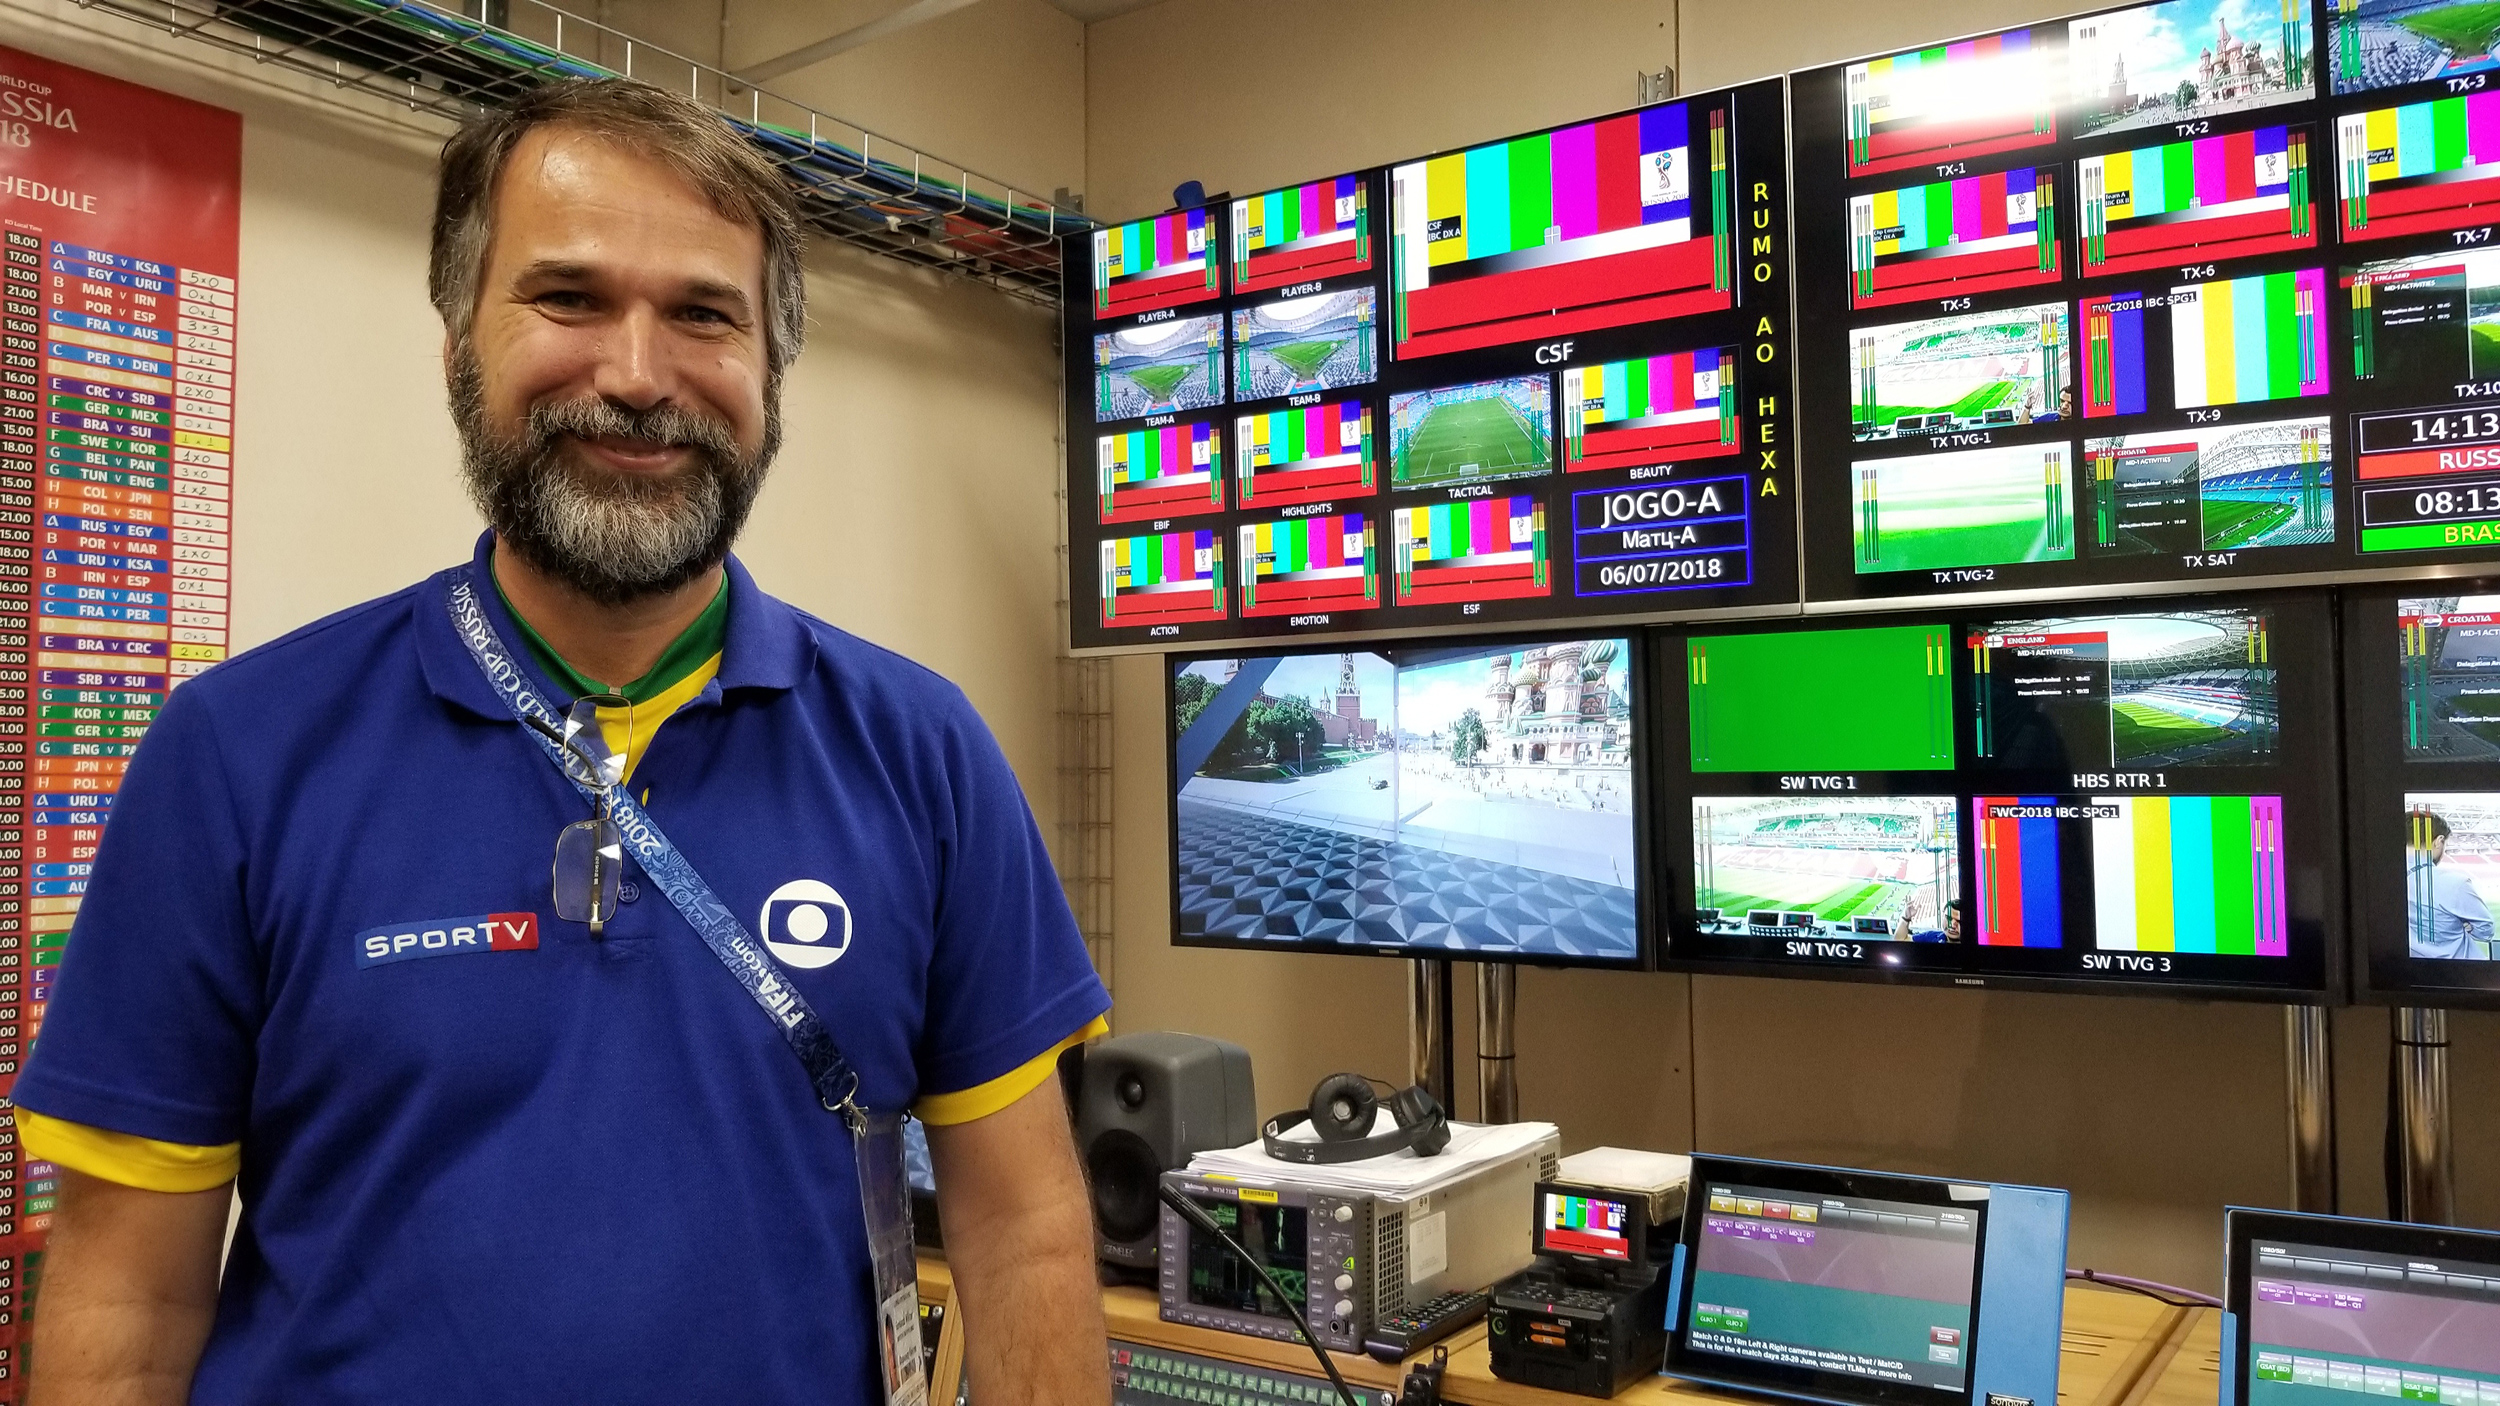 Live From FIFA World Cup: Brazil's TV Globo Takes On Moscow's Red